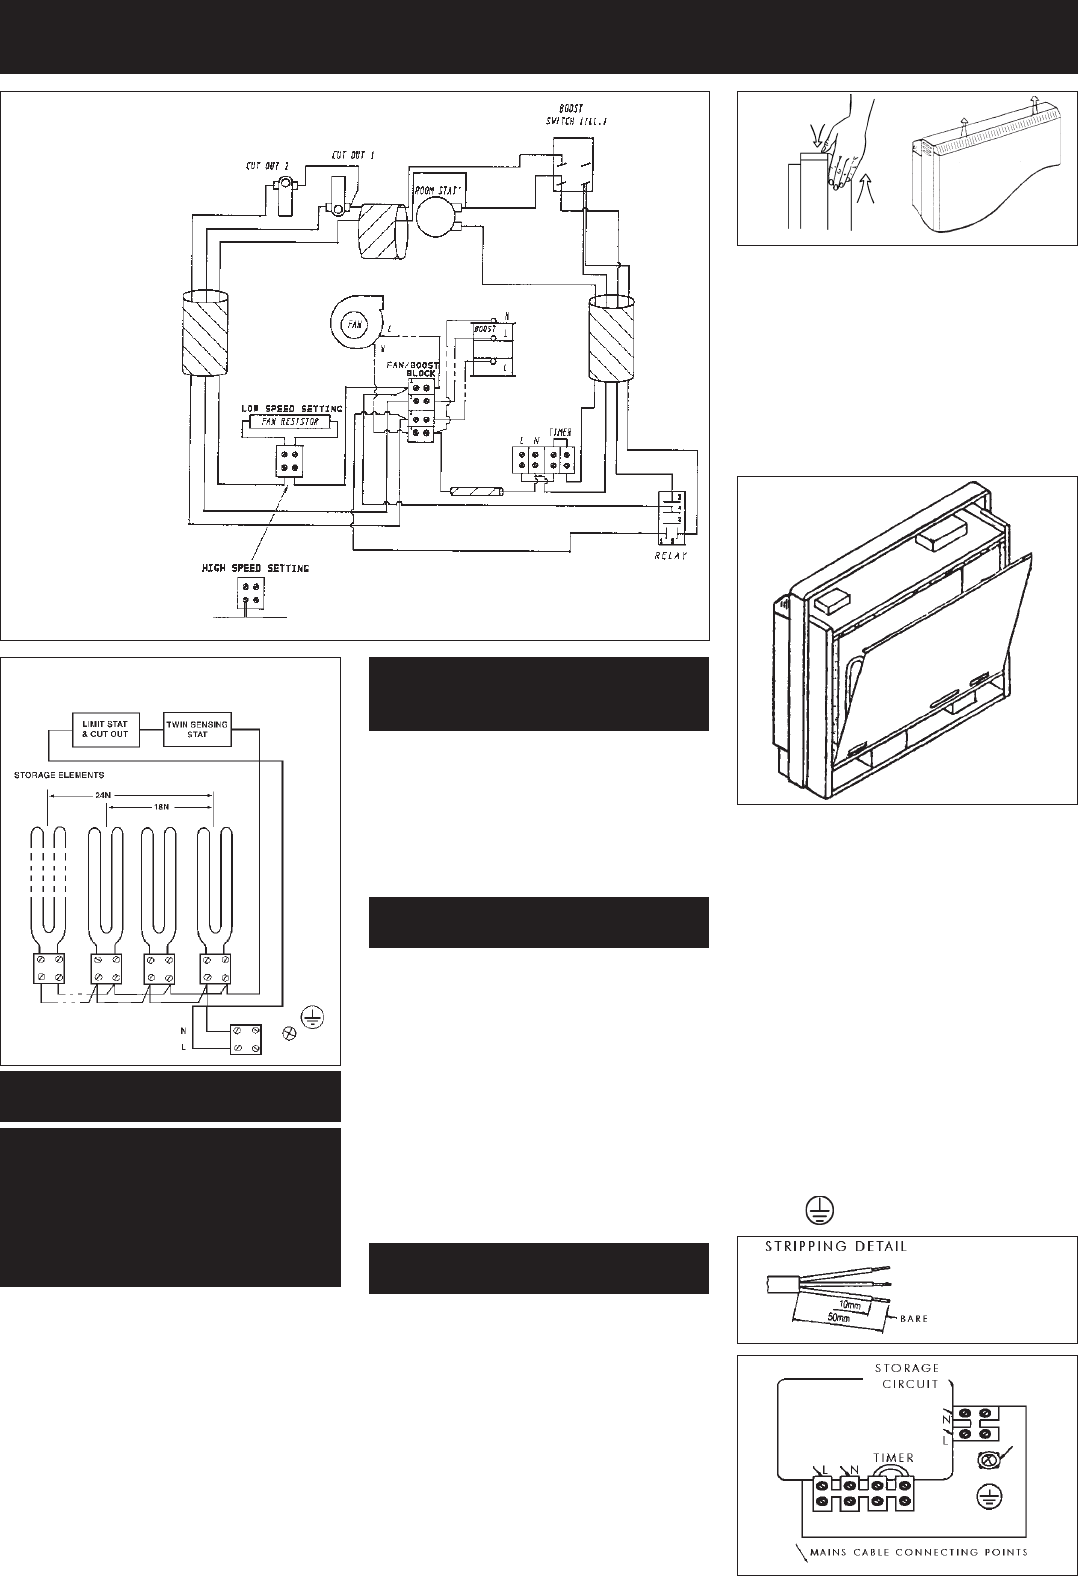 Dimplex storage heater wiring diagram engine diagram for a 2002 jeep page 2 of dimplex fan fxl18n user guide manualsonlinecom dbbddd44 348c 4ddd 9fcc 481360ff2aca bg2 dimplex fxl fan storage heater range fxl18n 26kw 18kwh asfbconference2016 Gallery